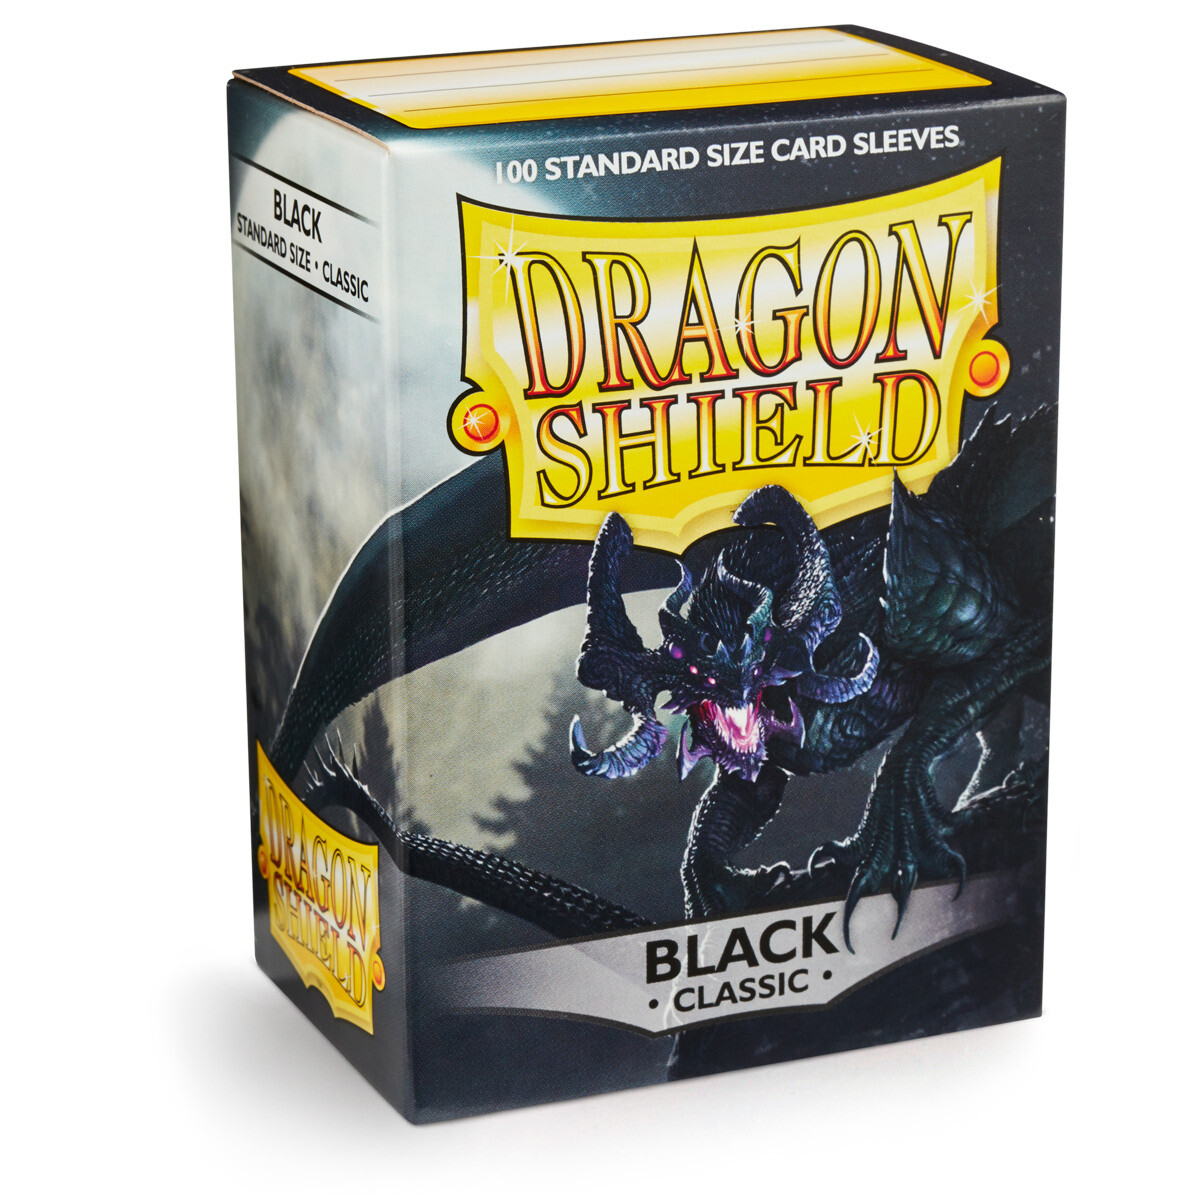 Dragon Shield 100 Sleeves - Black